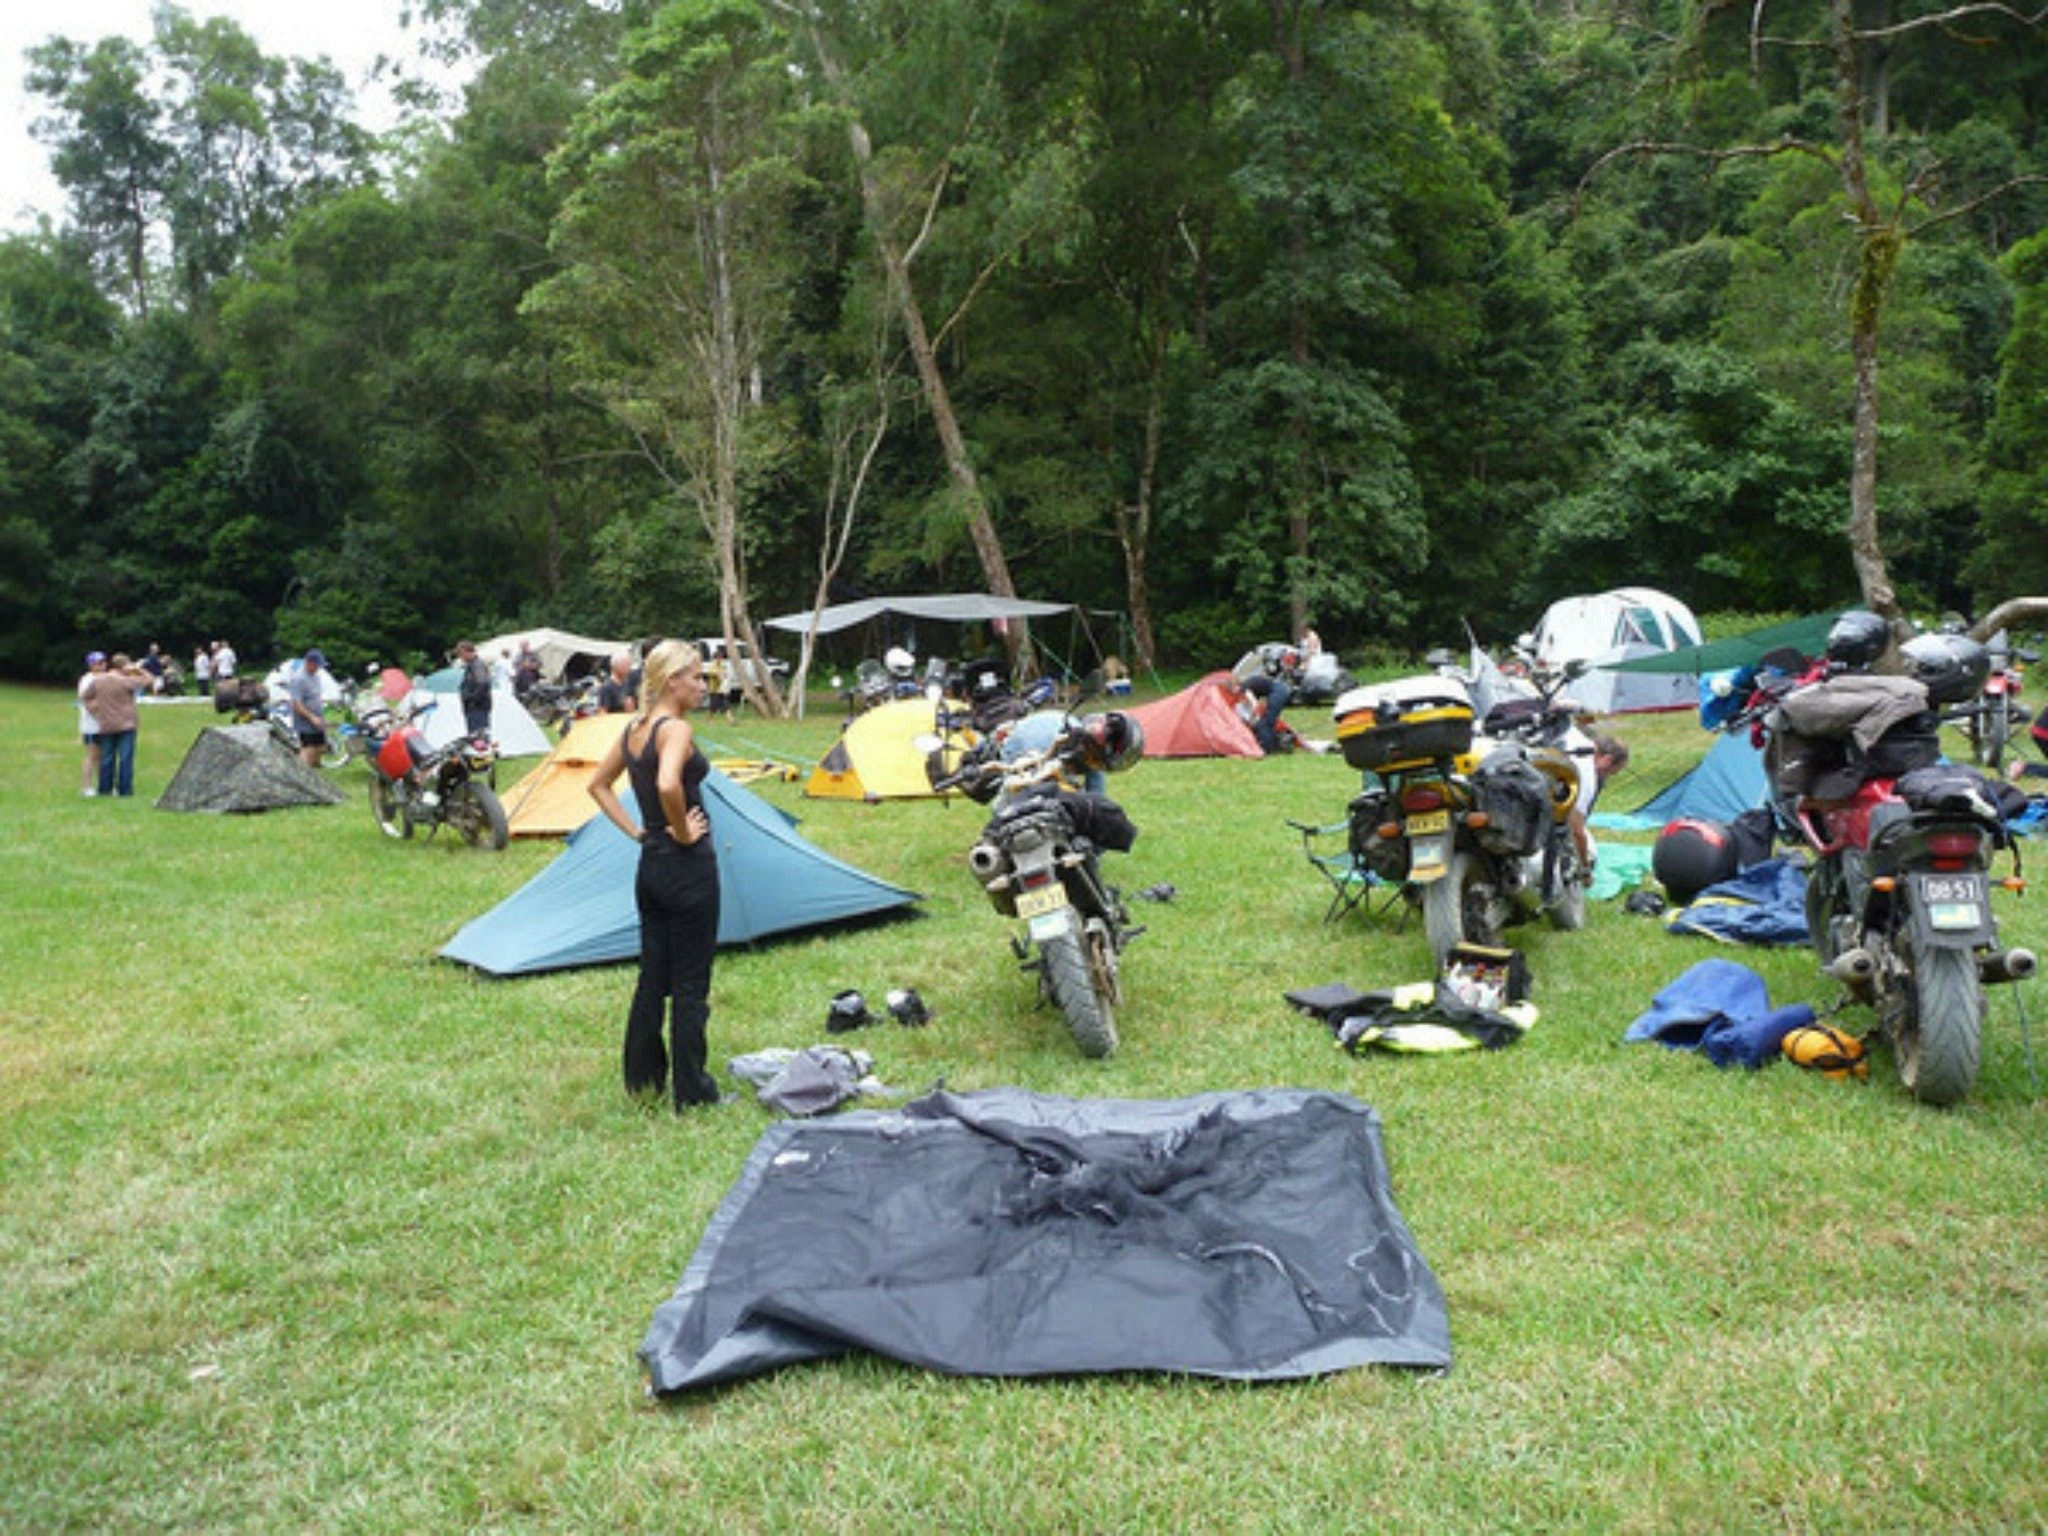 Karuah River Motorcycle Rally - New South Wales Tourism